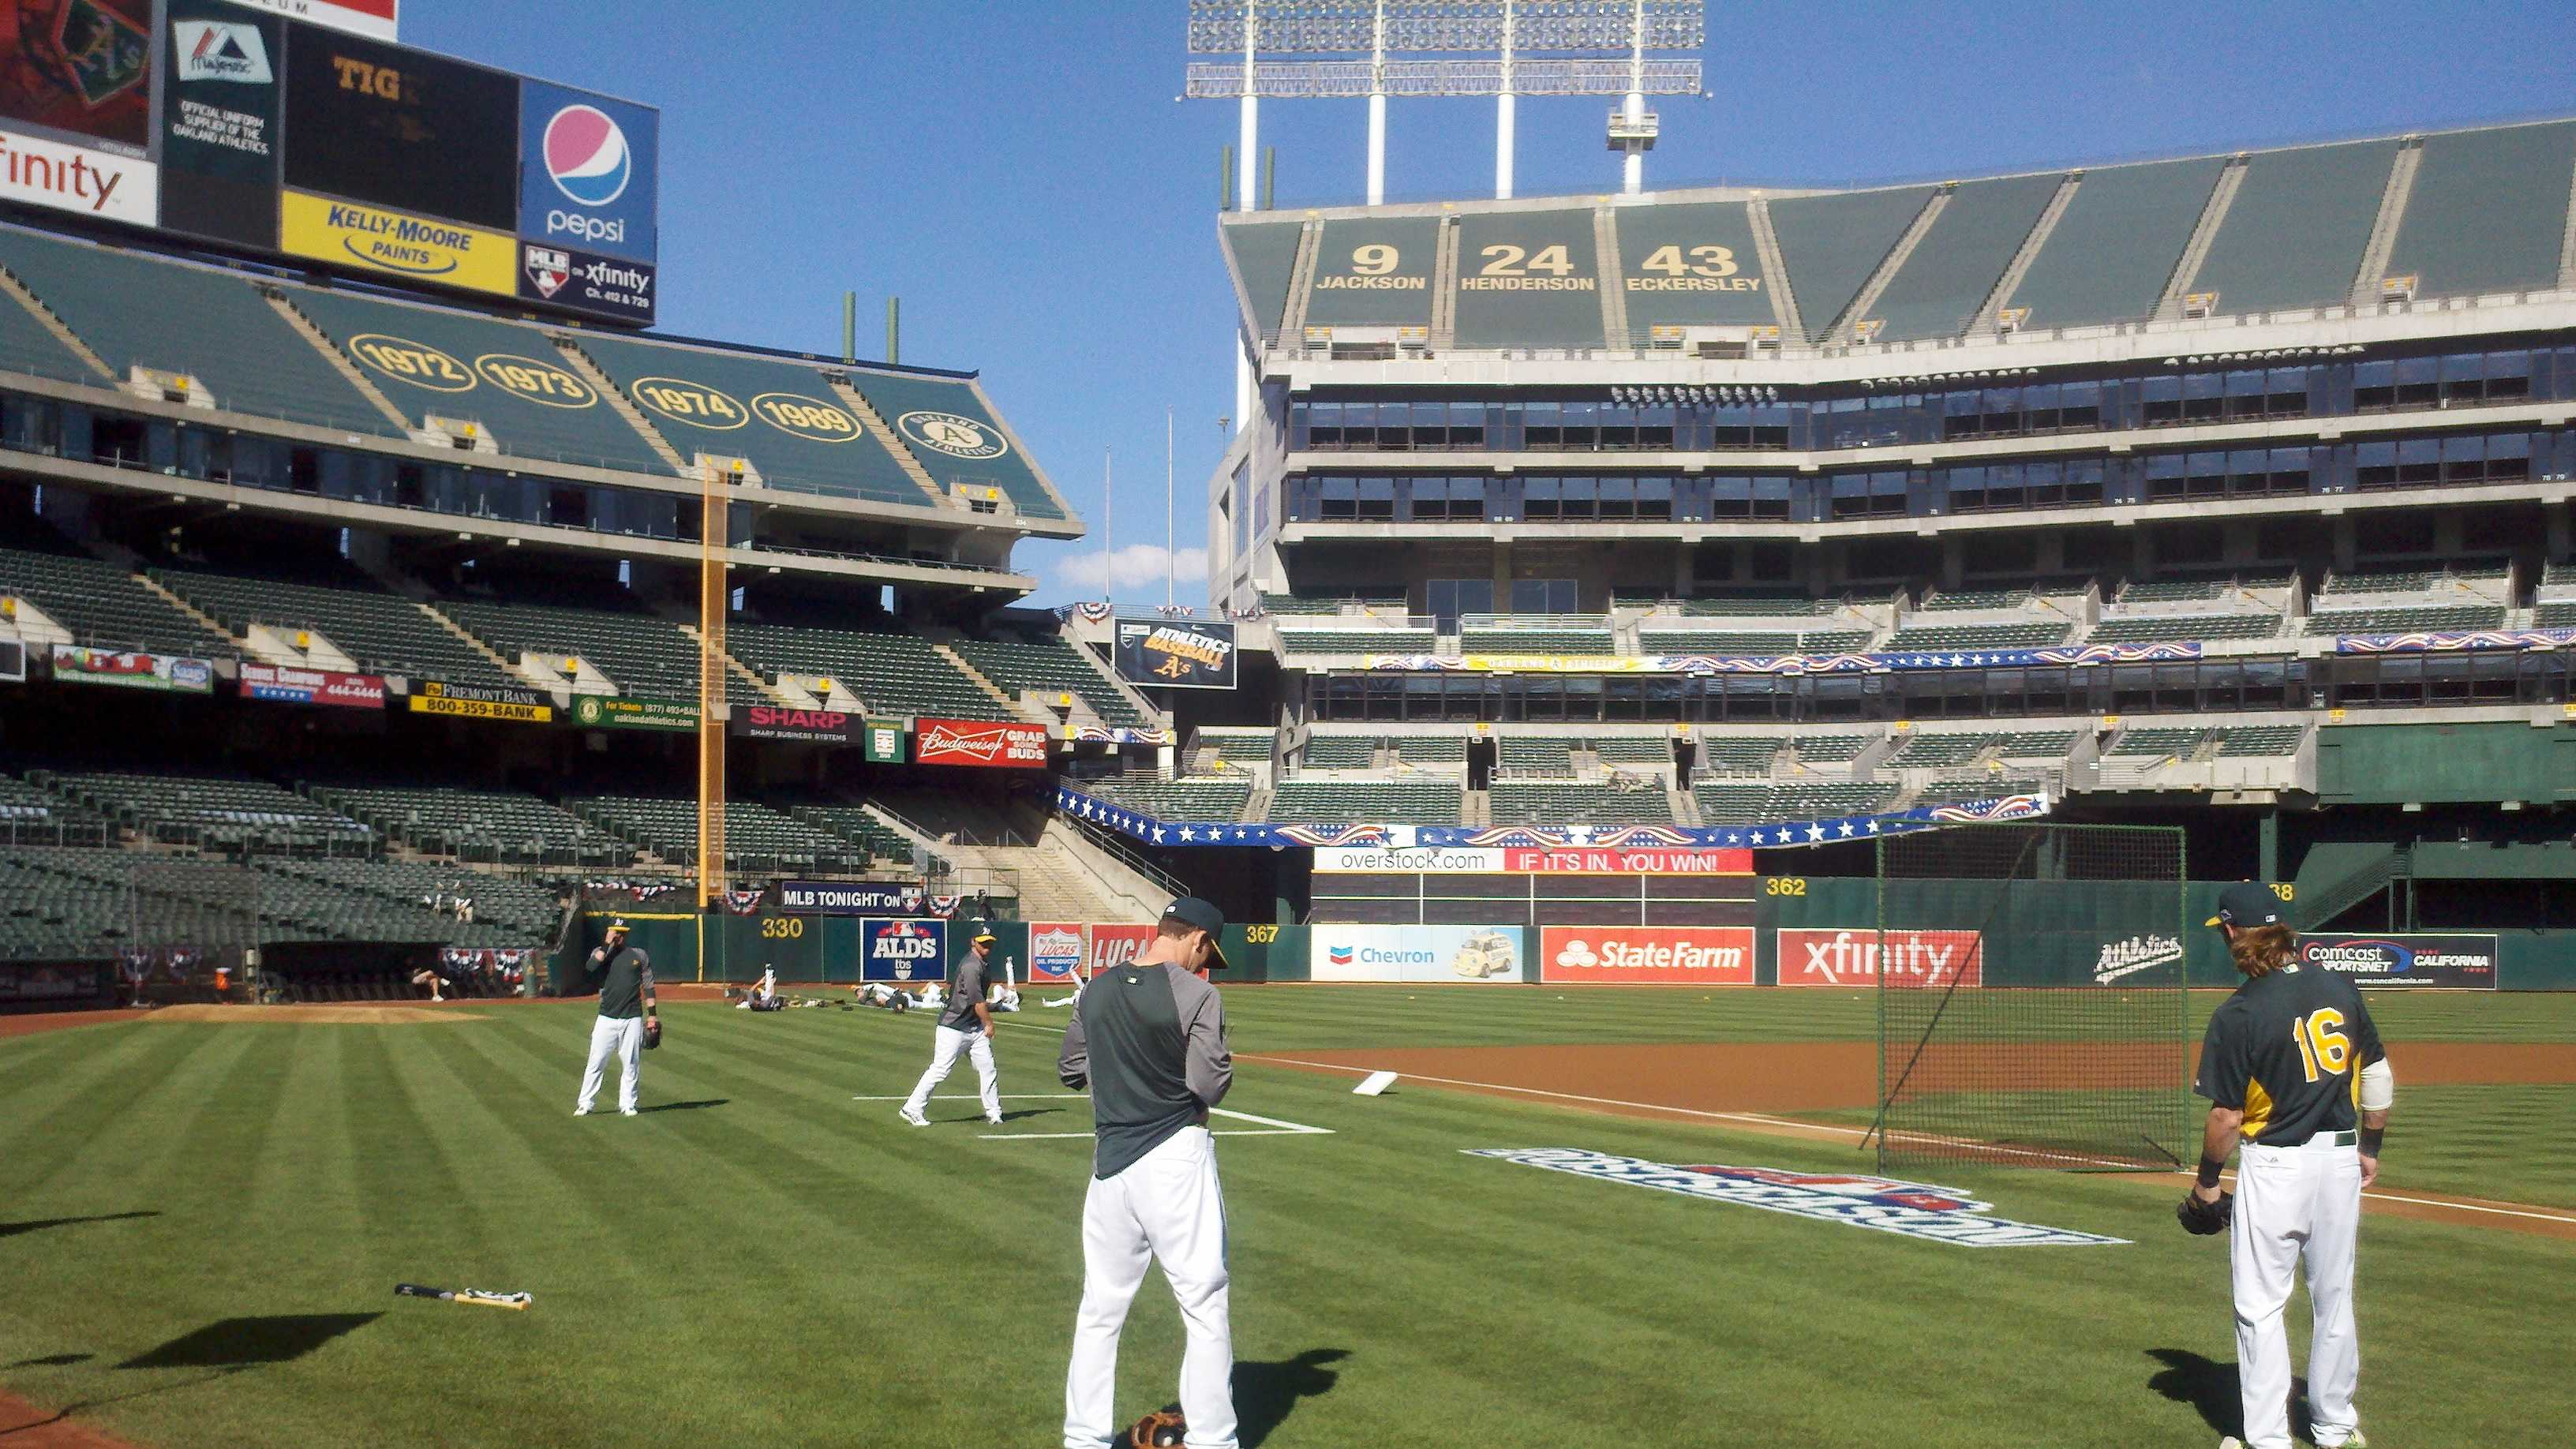 The Oakland A's warm up in advance of a big Game 3 on Tuesday night vs. the Detroit Tigers (Oct. 9, 2012).